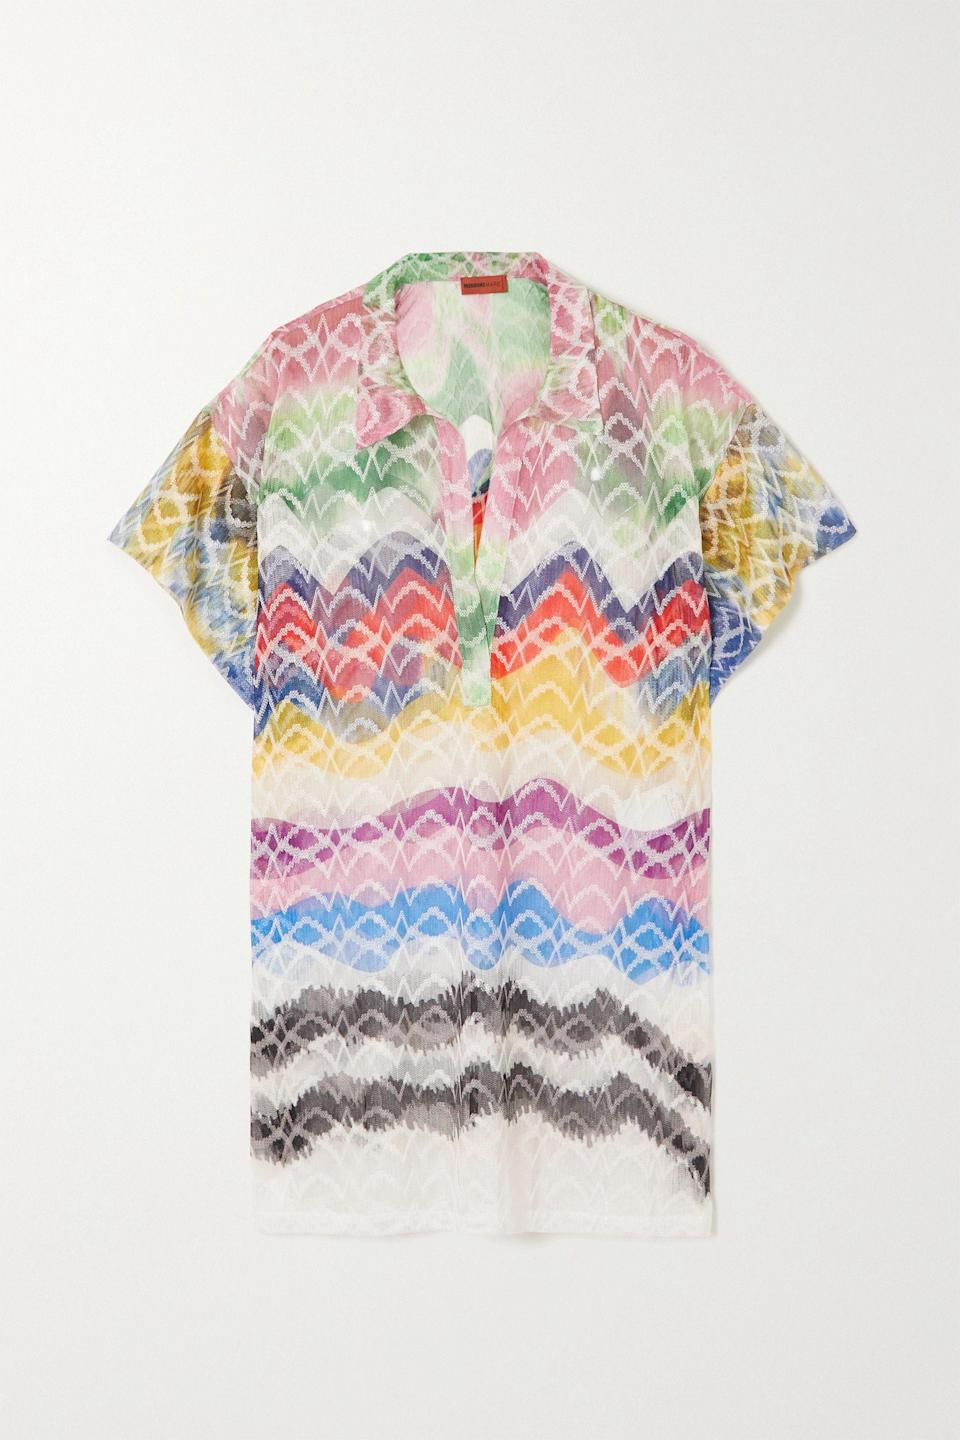 """<p><strong>MISSONI</strong></p><p>net-a-porter.com</p><p><strong>$875.00</strong></p><p><a href=""""https://go.redirectingat.com?id=74968X1596630&url=https%3A%2F%2Fwww.net-a-porter.com%2Fen-us%2Fshop%2Fproduct%2Fmissoni%2Fclothing%2Fcoverups%2Fmare-crochet-knit-kaftan%2F2204324138986987&sref=https%3A%2F%2Fwww.townandcountrymag.com%2Fstyle%2Ffashion-trends%2Fg36421997%2Fcolorful-summer-outfit-ideas%2F"""" rel=""""nofollow noopener"""" target=""""_blank"""" data-ylk=""""slk:Shop Now"""" class=""""link rapid-noclick-resp"""">Shop Now</a></p><p>Missoni feels incredibly of the moment this summer (and, let's be honest, every summer). This semi-sheer collared caftan is impossibly chic. </p>"""